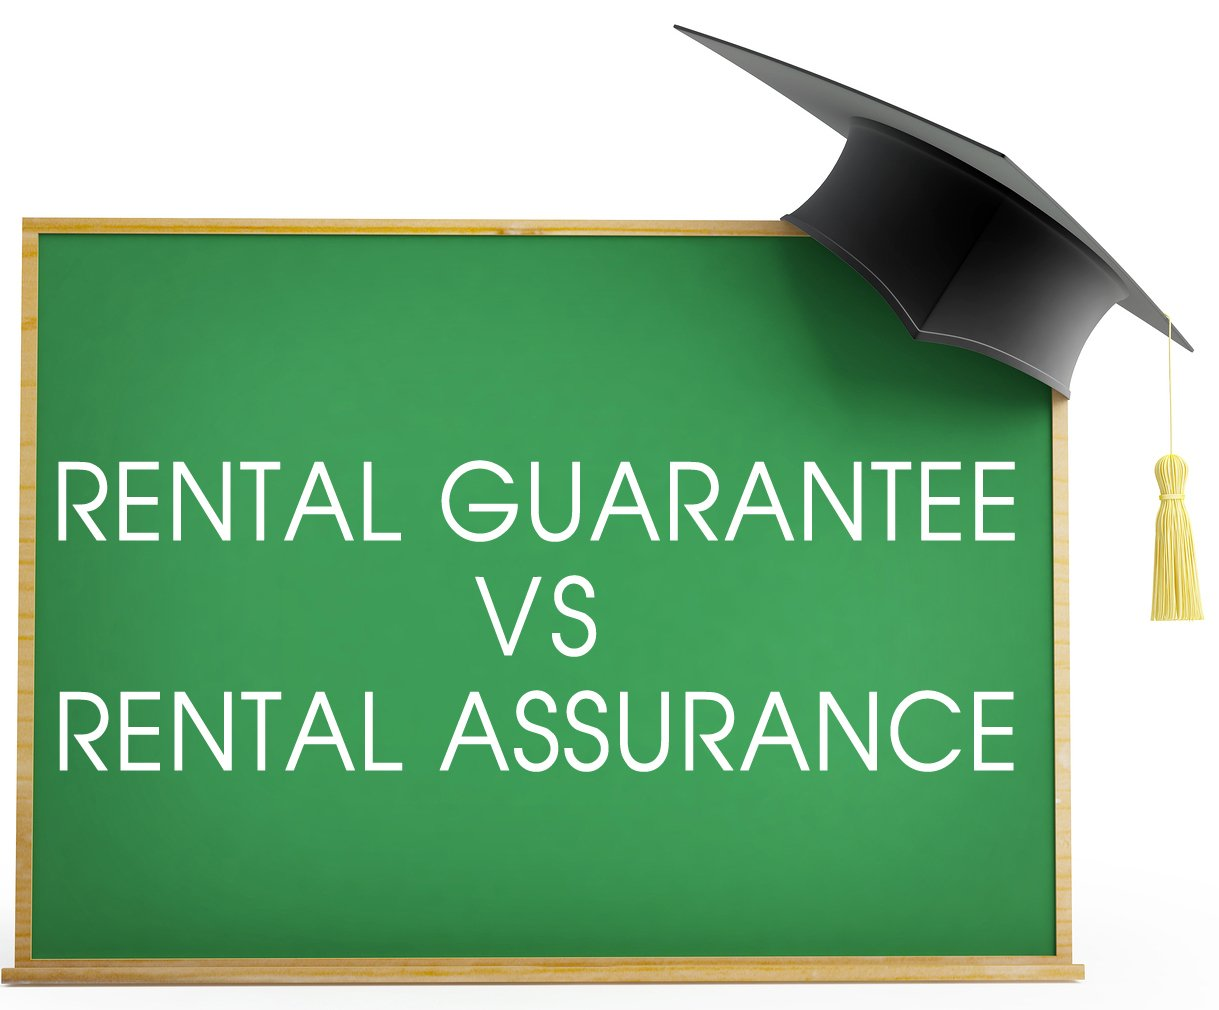 What are rental guarantees & assurances? Are they a good thing?